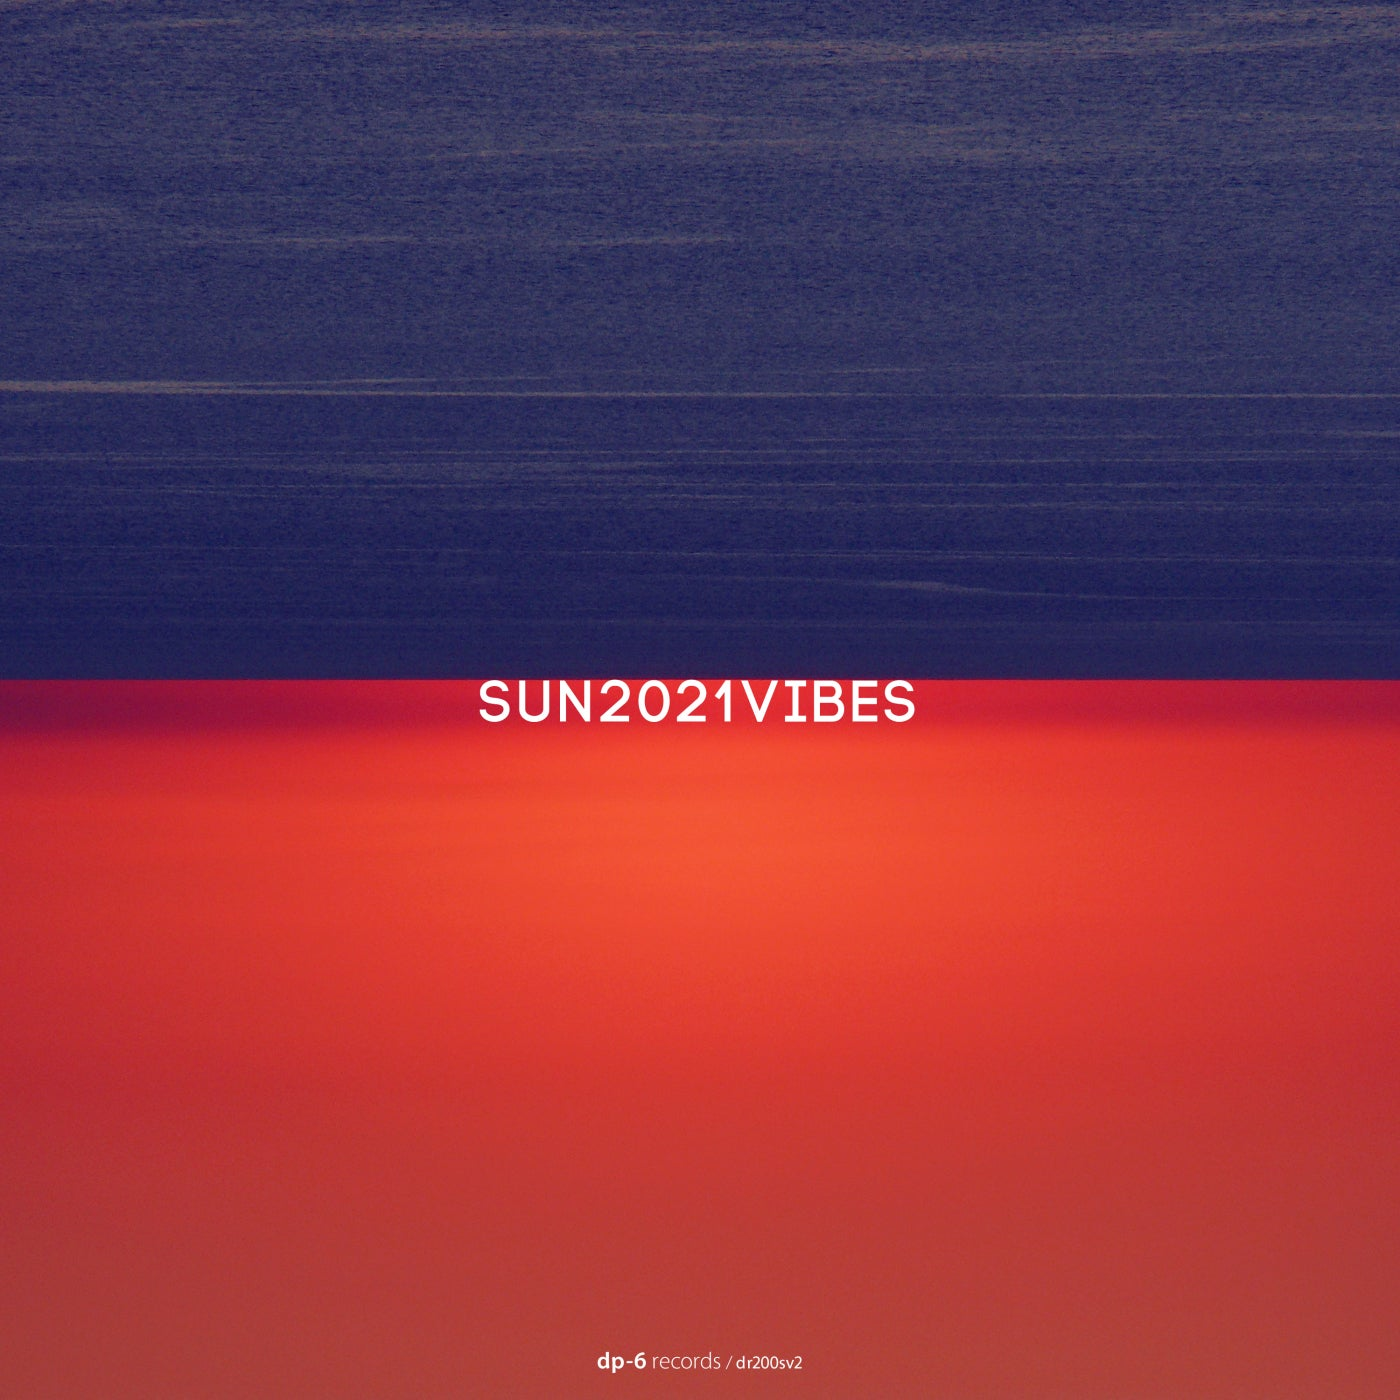 Various Performers - SUN2021VIBES Pt. 2 (2021)